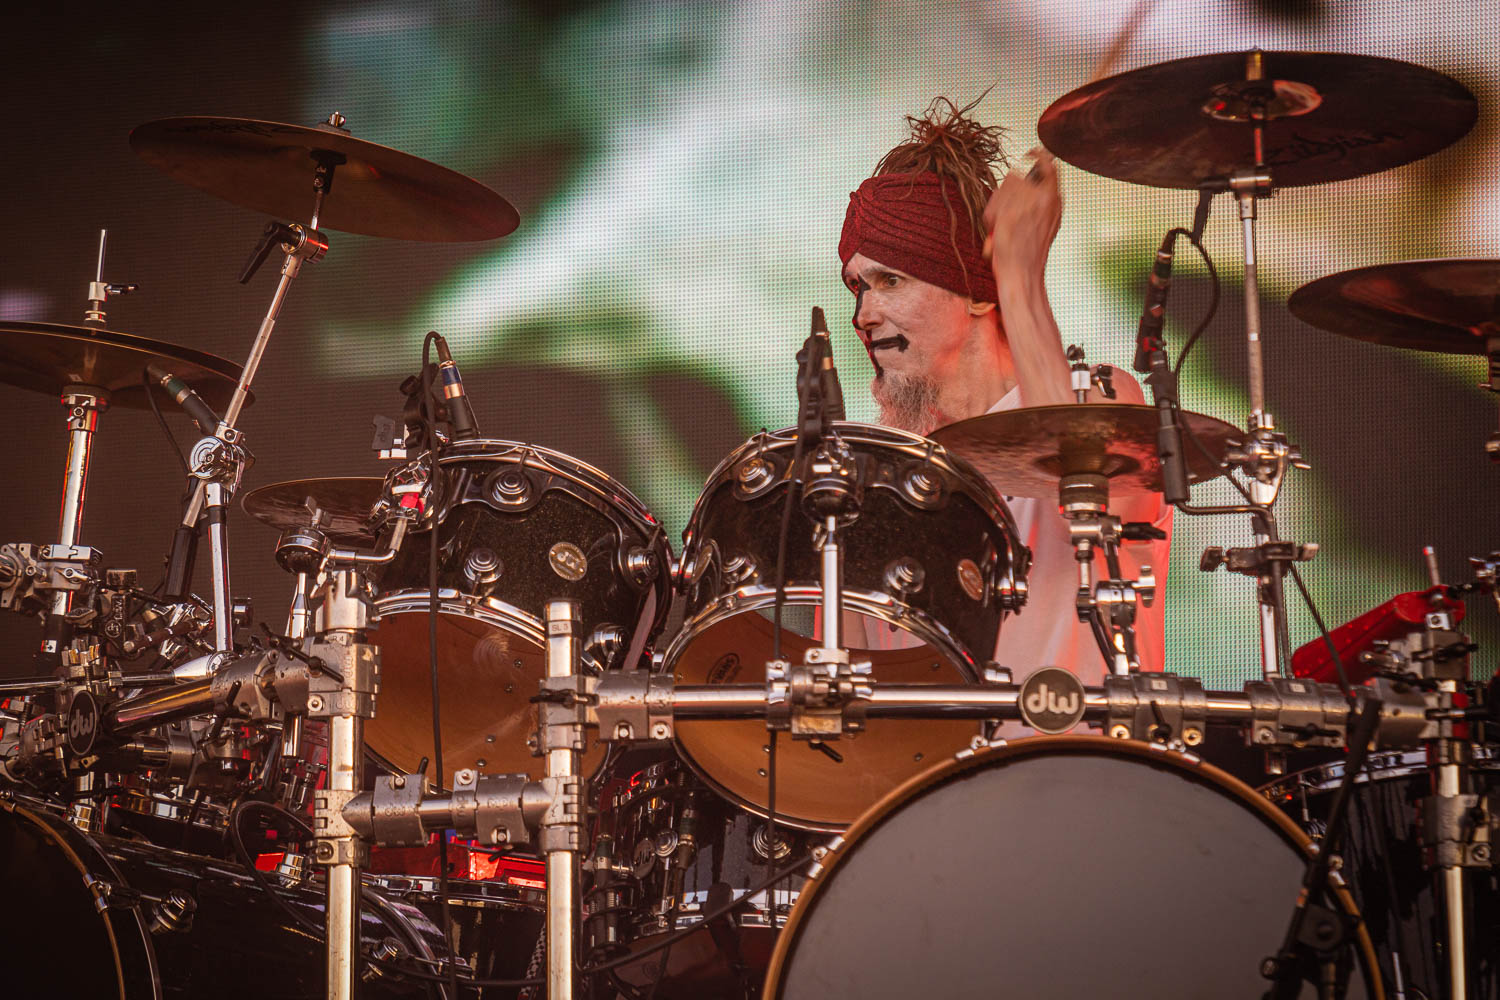 Rob Zombie live on stage at the 2019 Copenhell Metal Festival - here Ginger Fish on drums